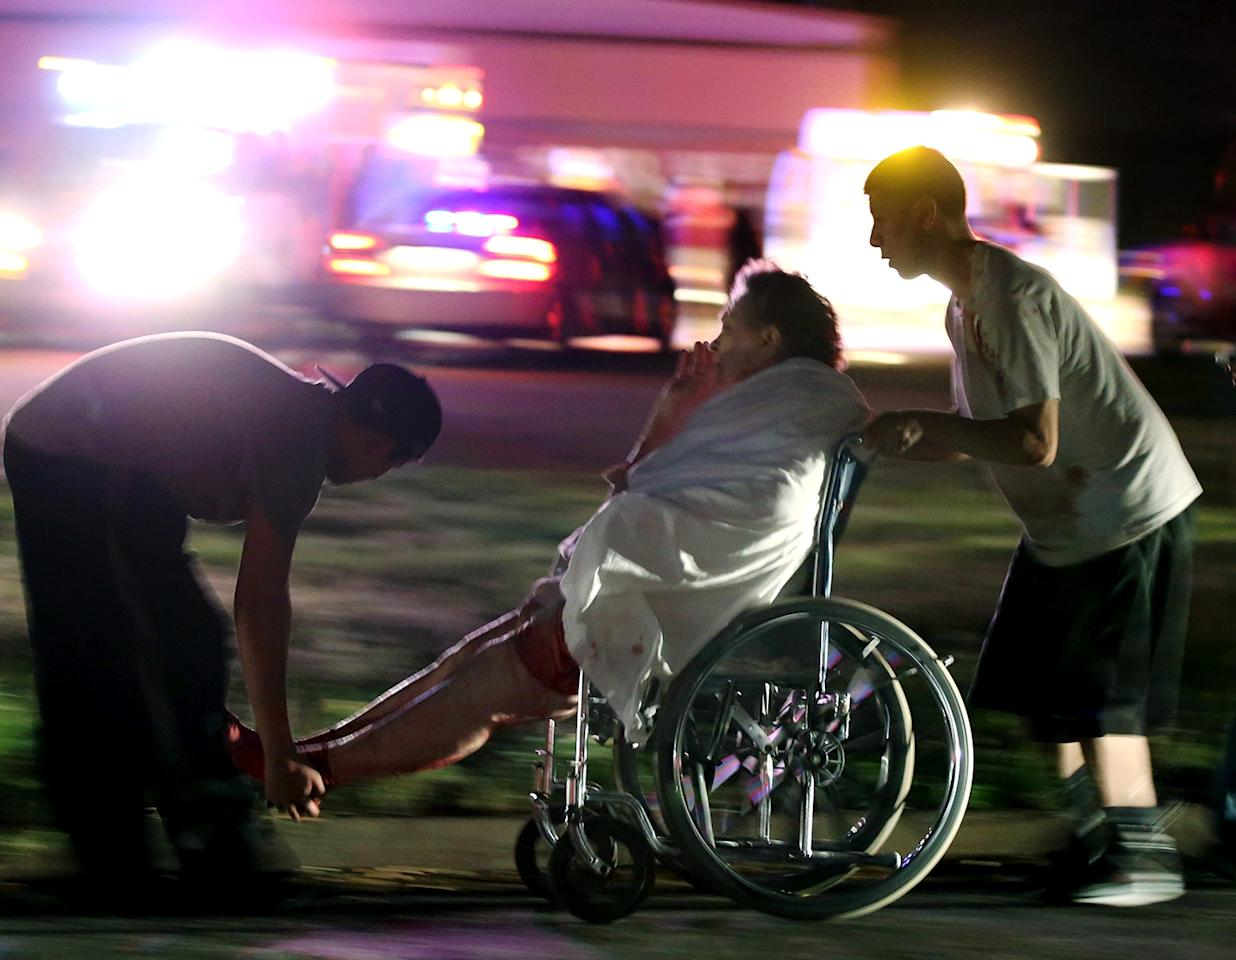 An injured elderly person is assisted by two young males as a nursing home is evacuated after an explosion at a nearby fertilizer plant Wednesday, April 17, 2013, in West, Texas. (AP Photo/Waco Tribune Herald, Rod Aydelotte)